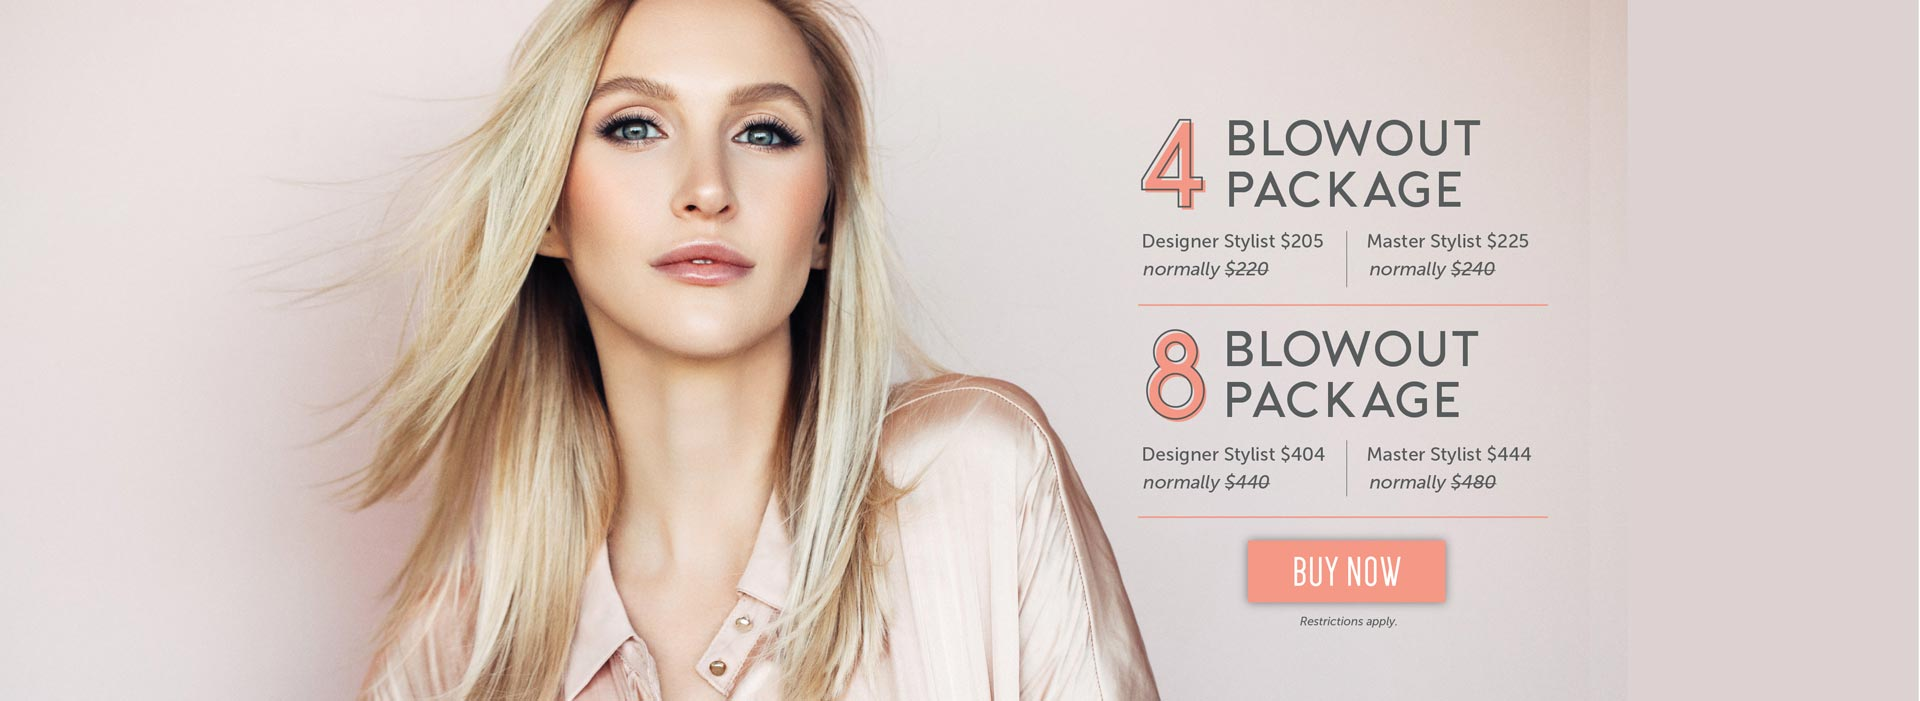 4 and 8 blowout package options